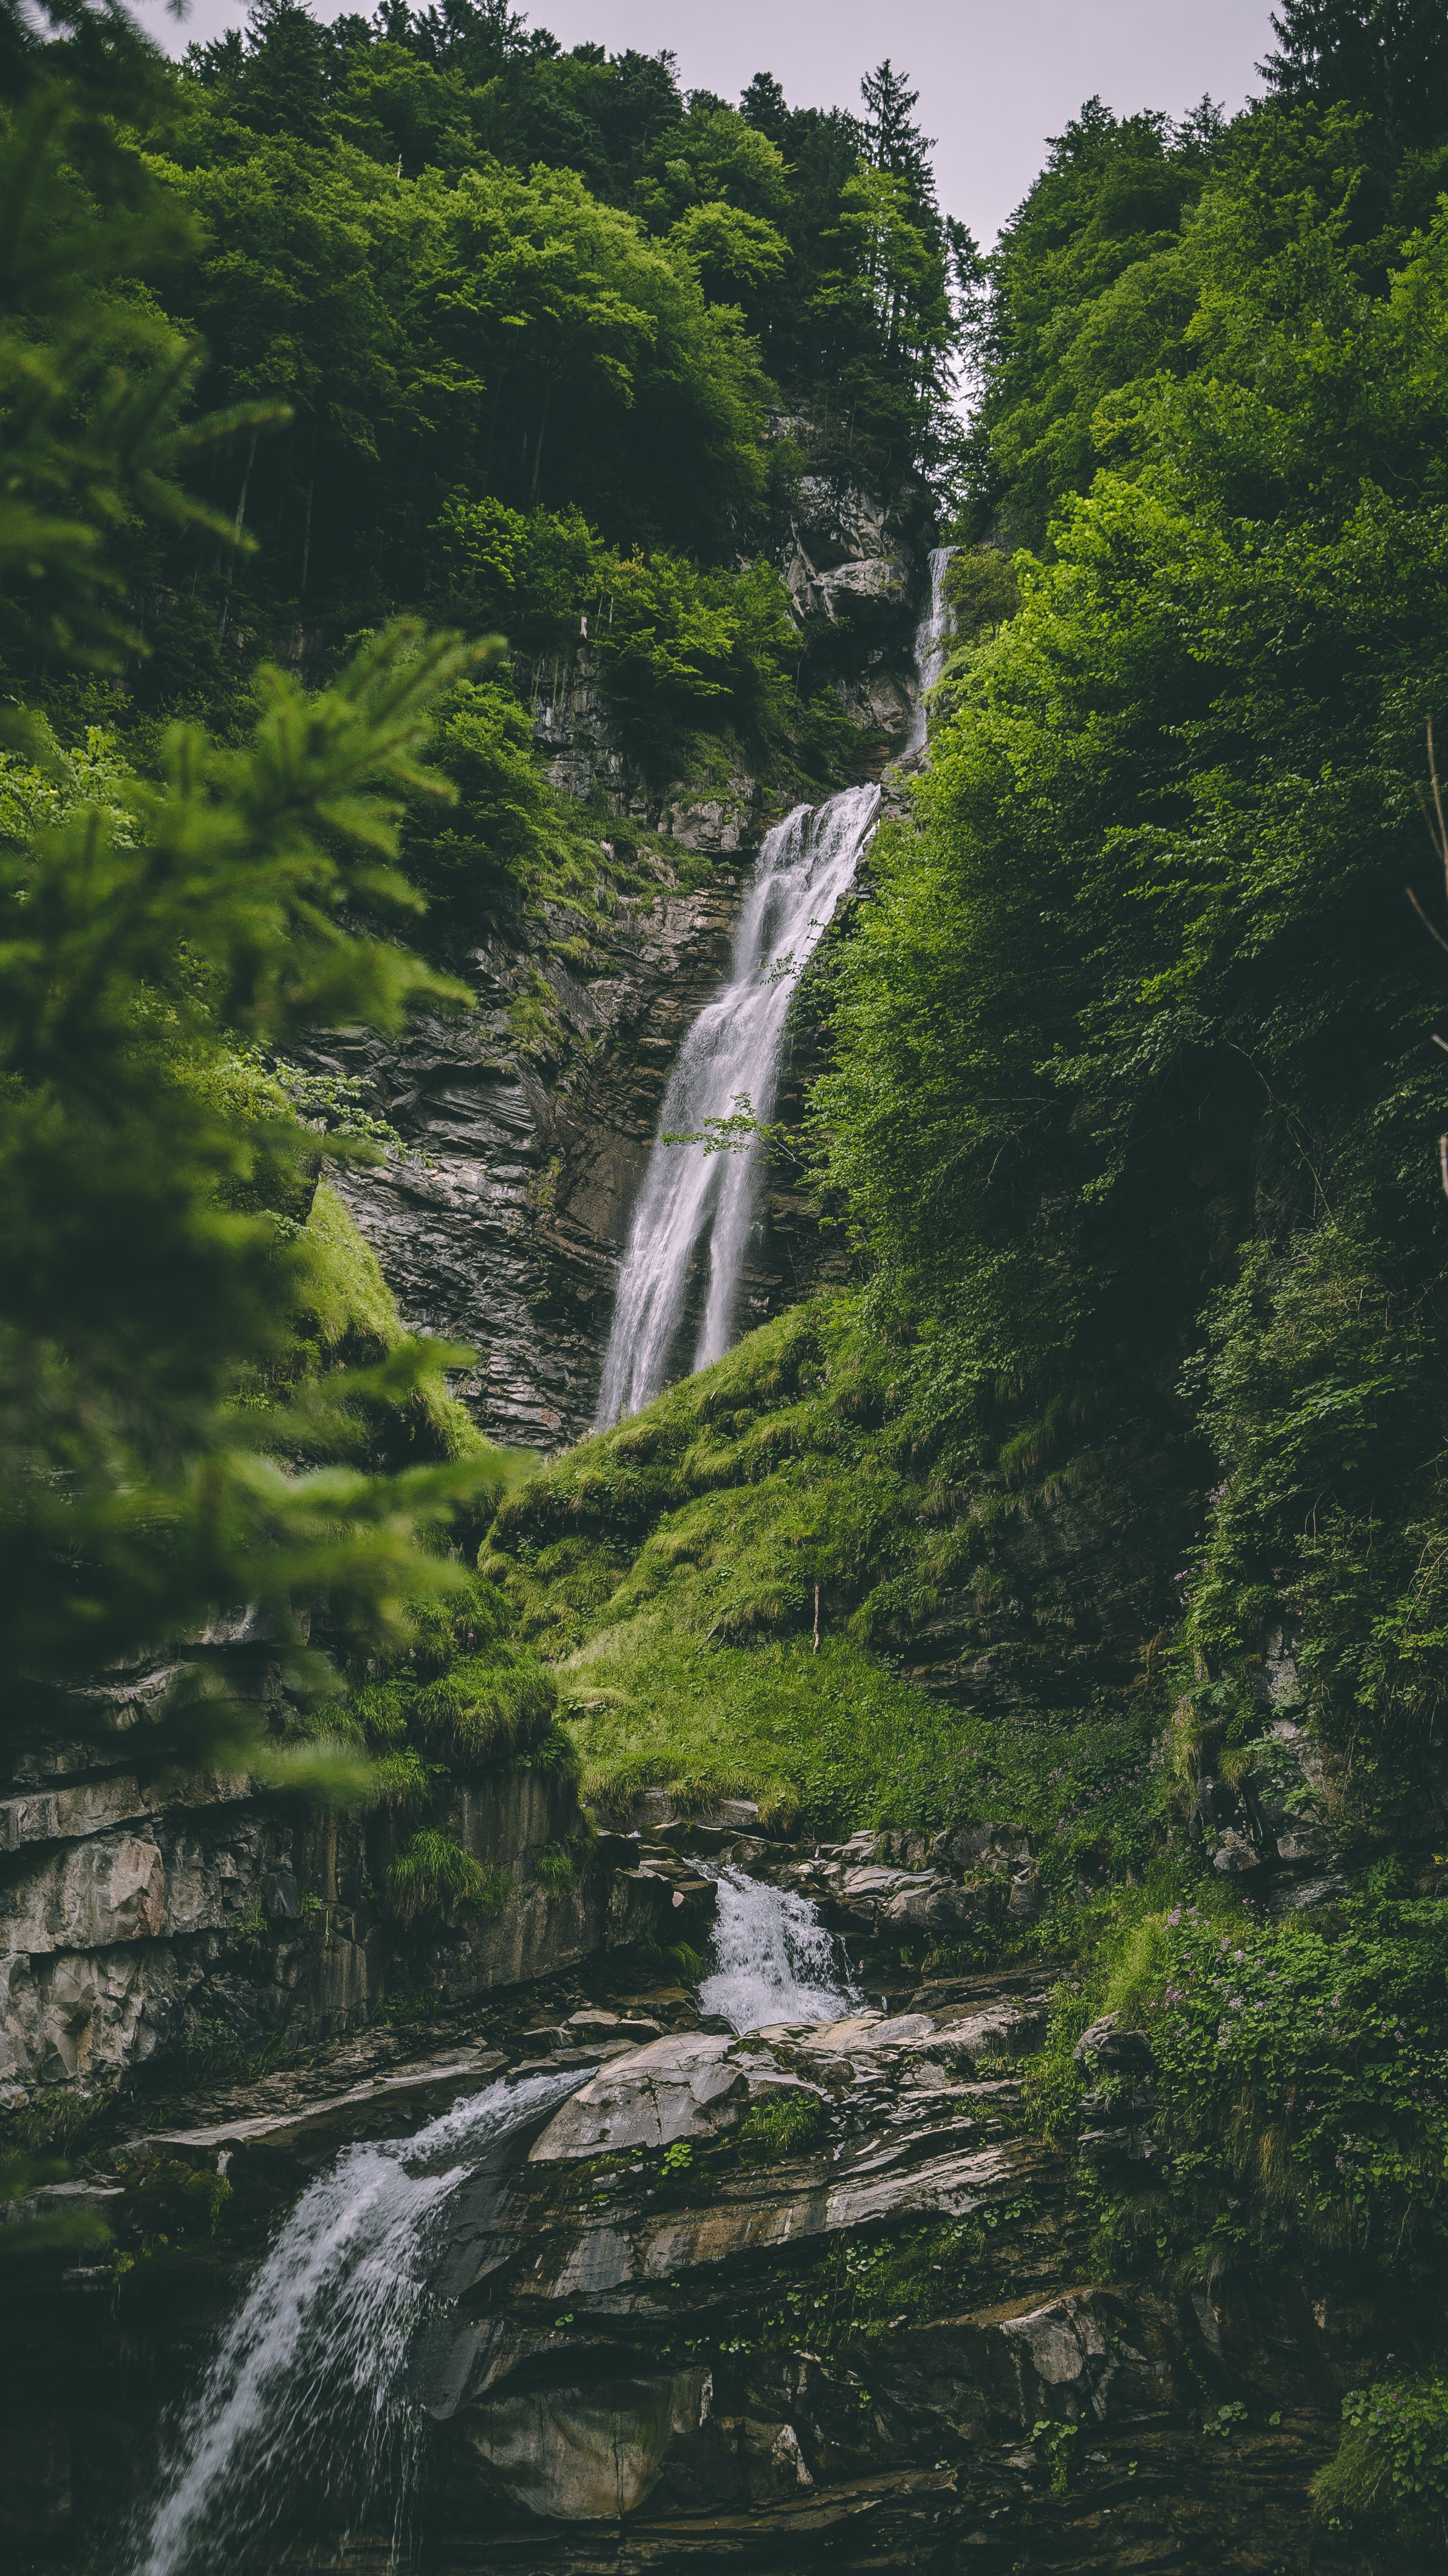 114915 download wallpaper Nature, Trees, Rock, Forest, Greens, Stone, Creek, Brook screensavers and pictures for free